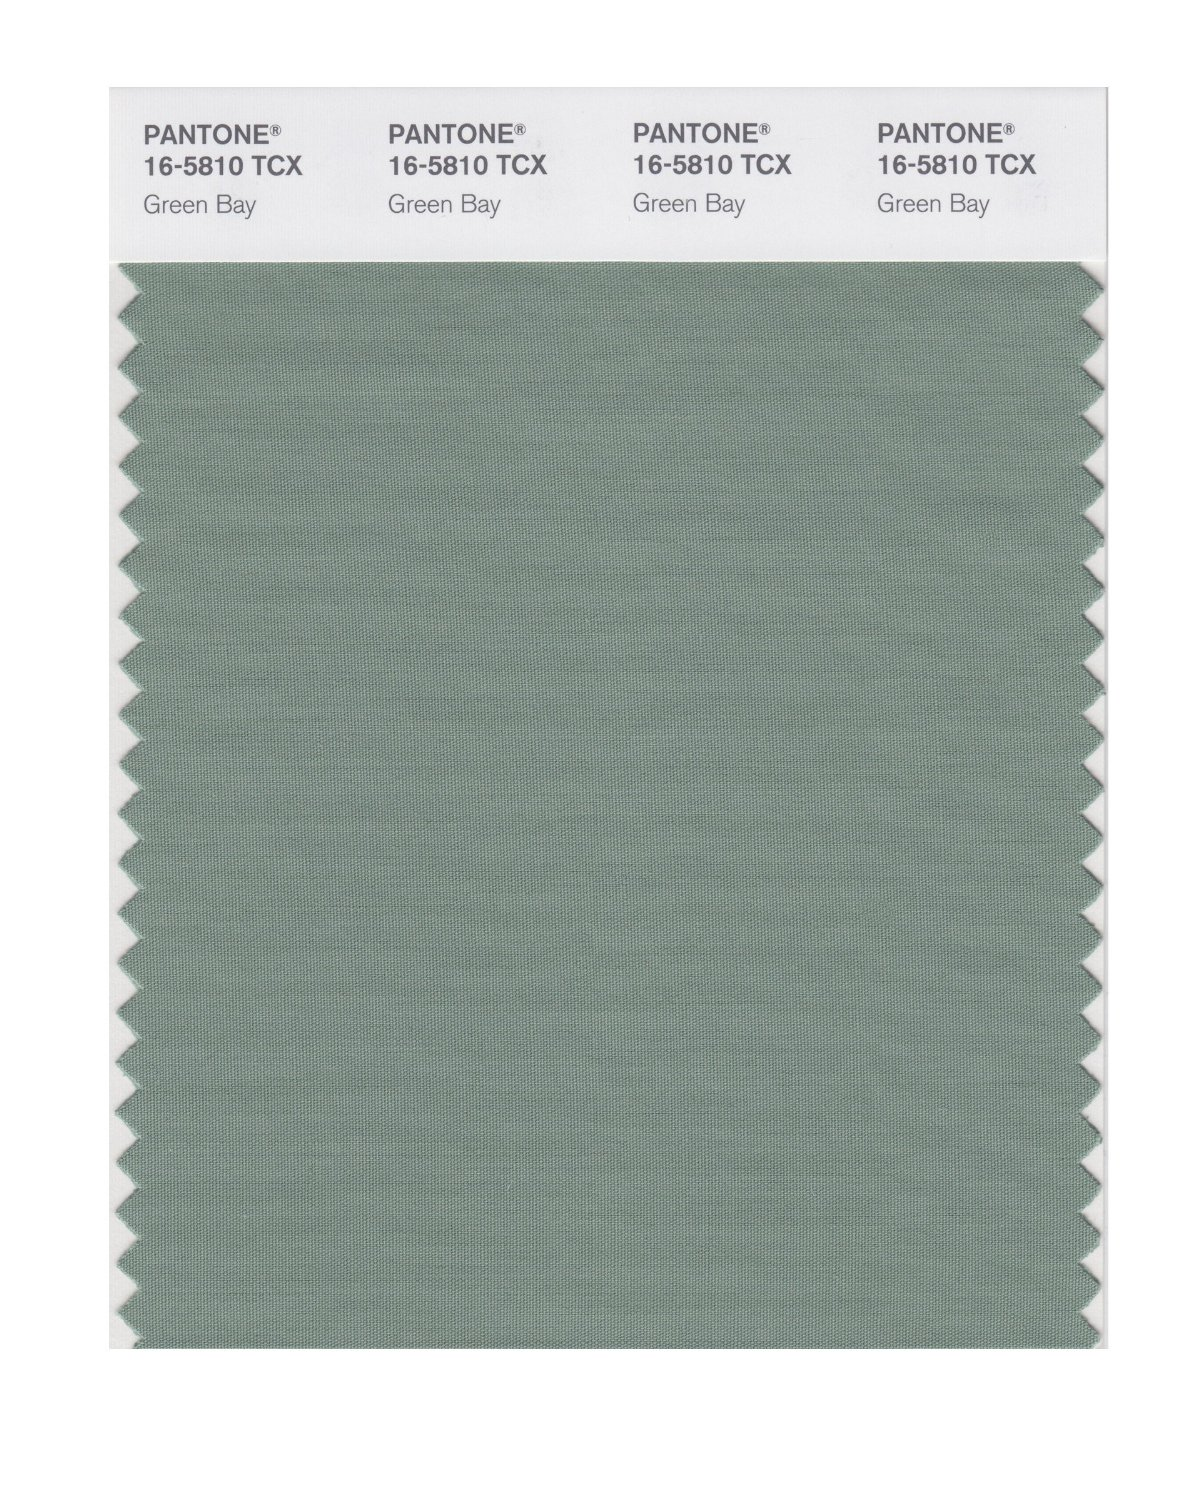 Pantone Smart Swatch 16-5810 Green Bay